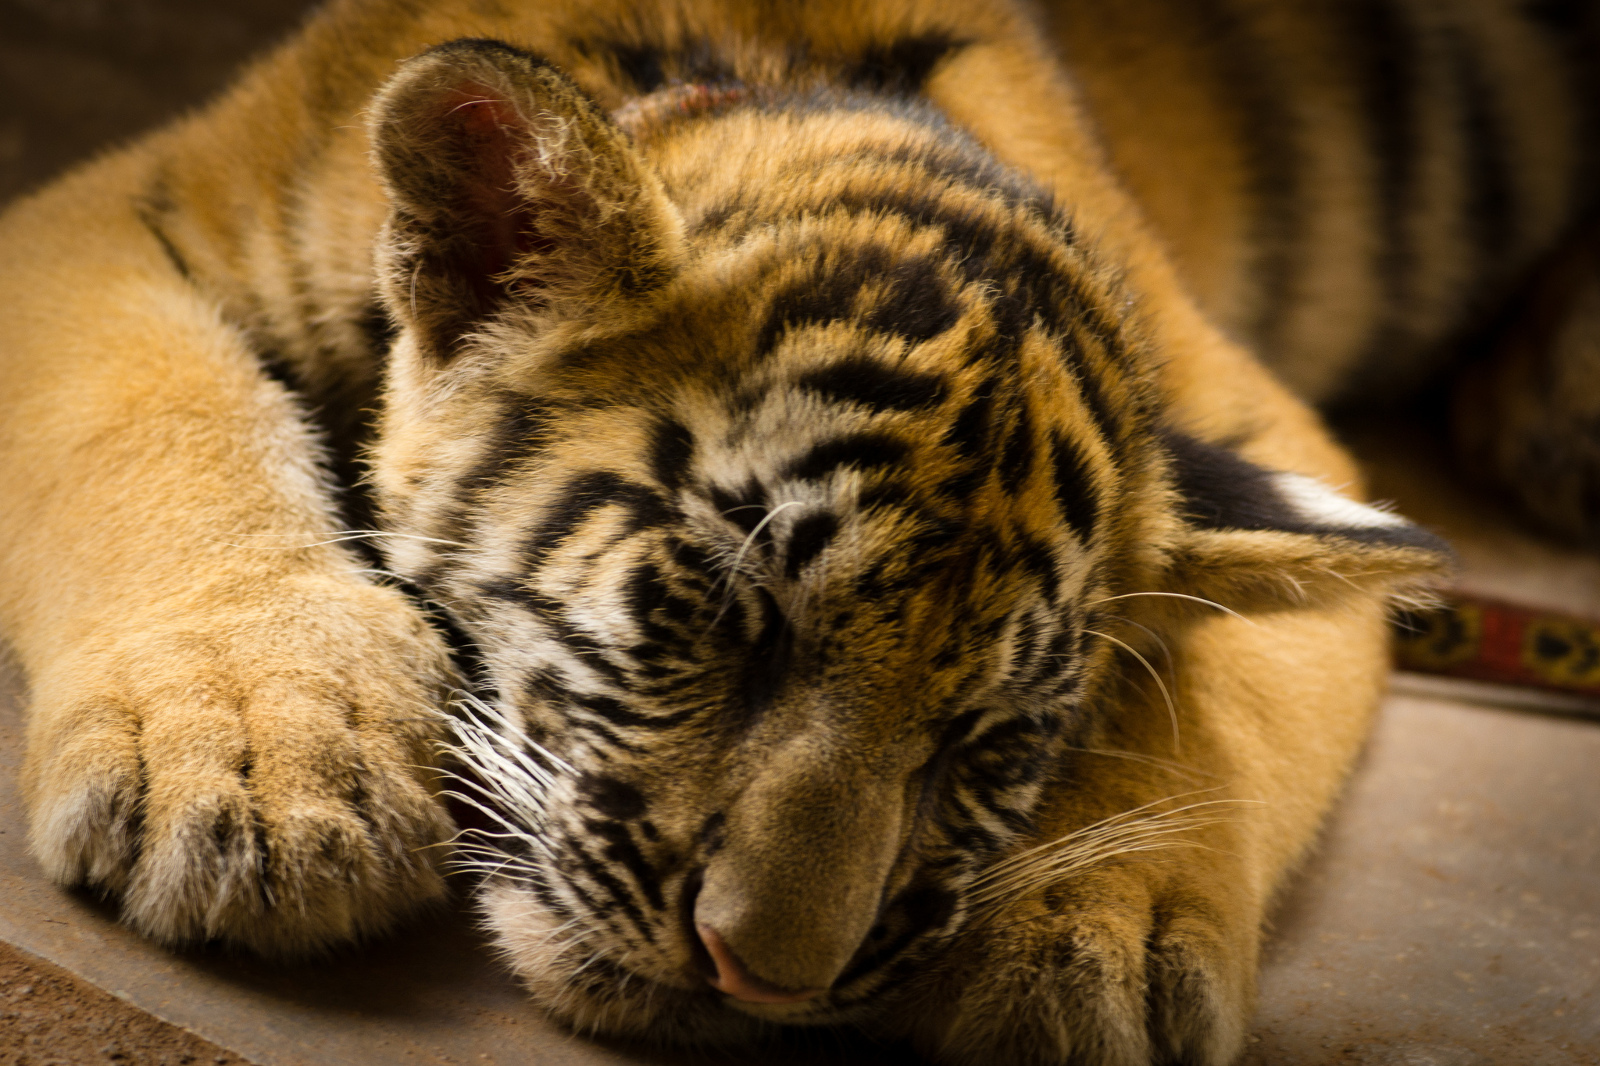 How We're Using Legislation to End the Vicious Cycle of Exotic Cat Ownership